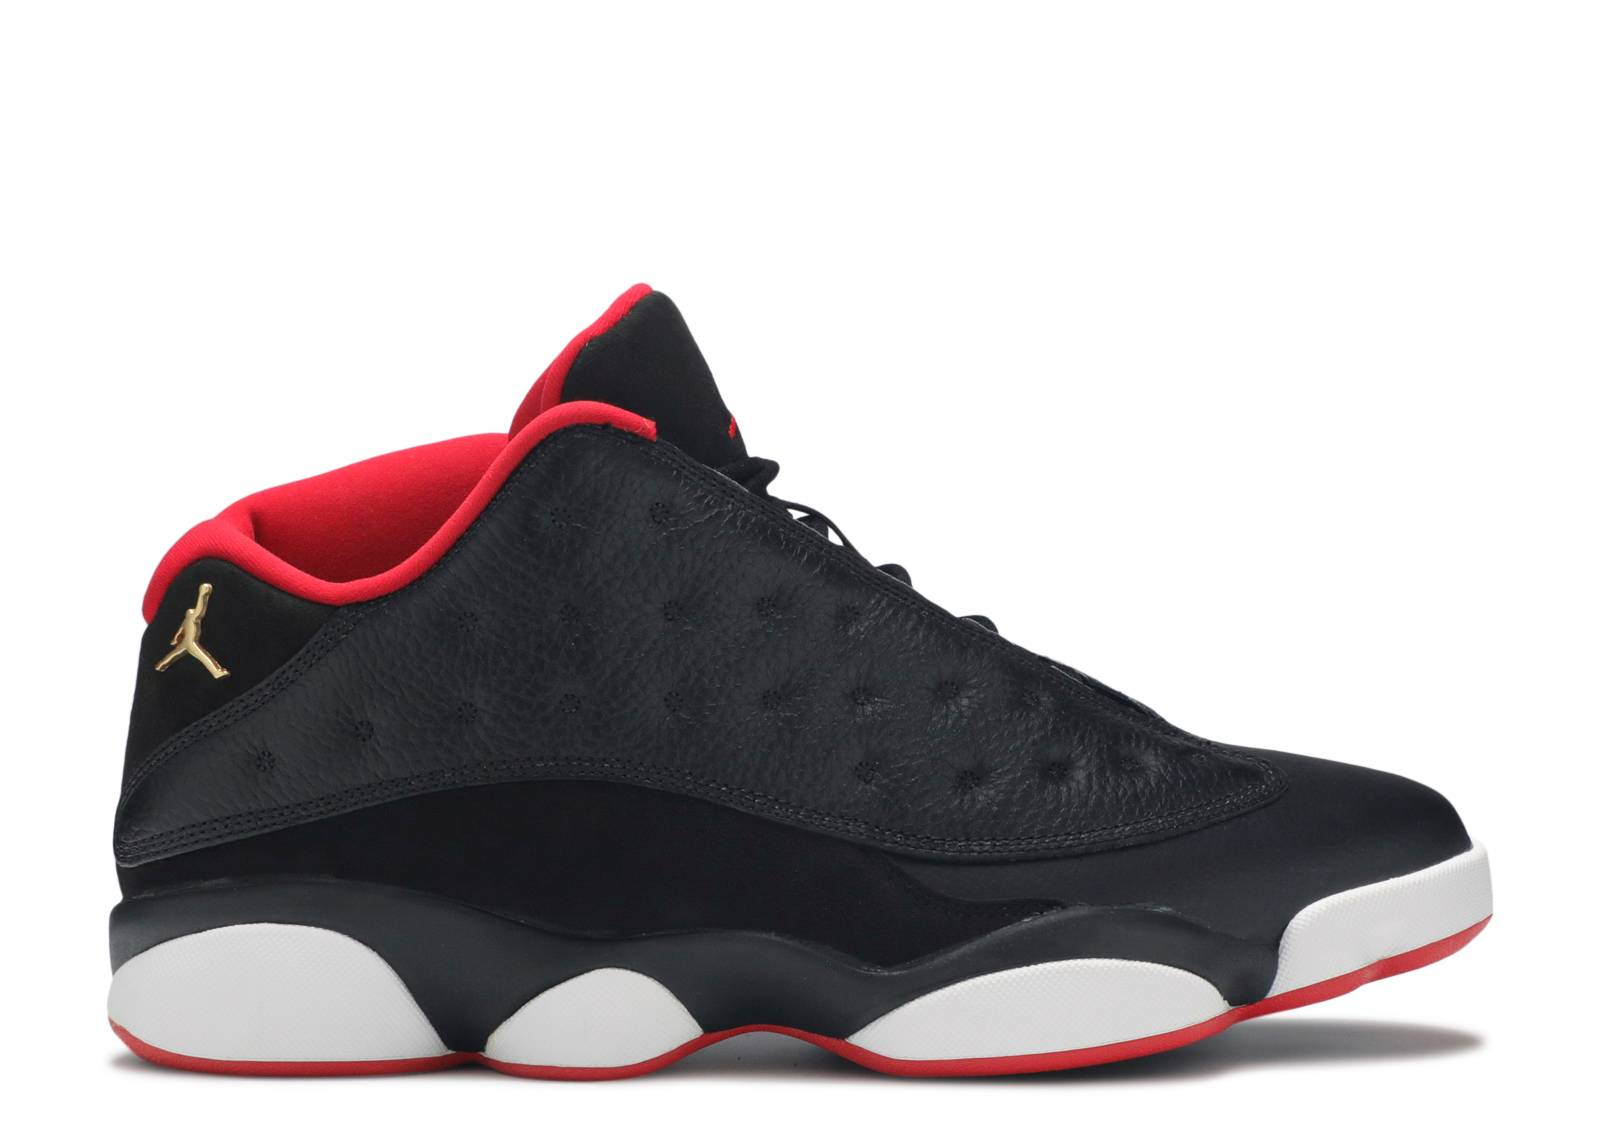 wholesale dealer 601d4 1f029 air jordan 13 retro low